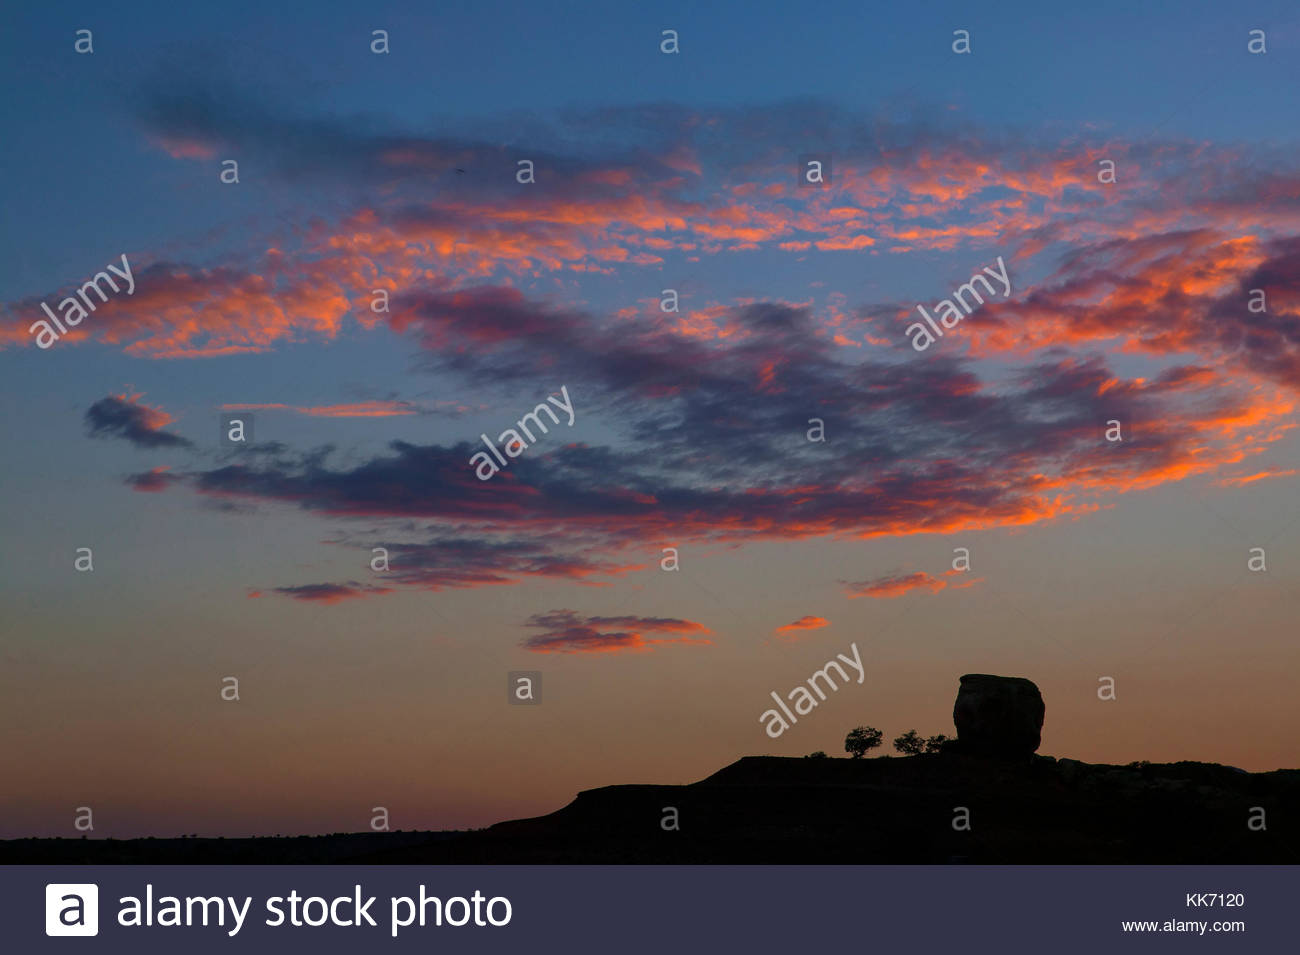 A layer of altocumulus clouds are turned fiery red by the setting sun as a large rock formation appears to observe - Stock Image